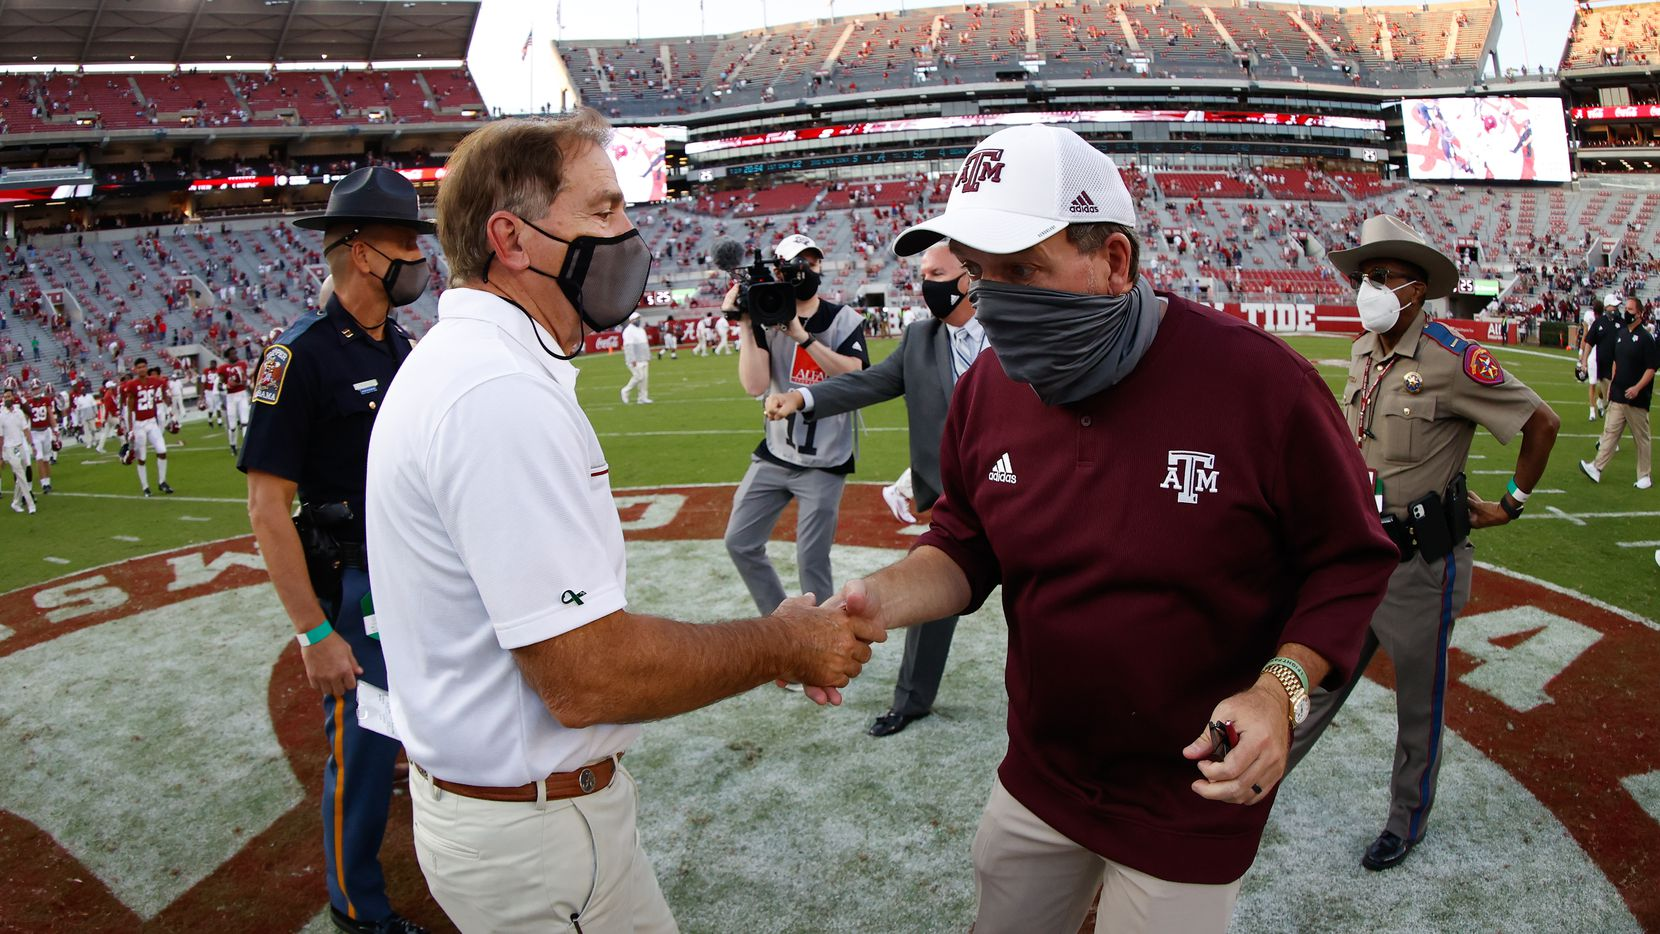 TUSCALOOSA, AL - OCTOBER 3: Nick Saban of the Alabama Crimson Tide shakes hands with Jimbo Fisher of the Texas A&M Aggies after the game on October 3, 2020 at Bryant-Denny Stadium in Tuscaloosa, Alabama.